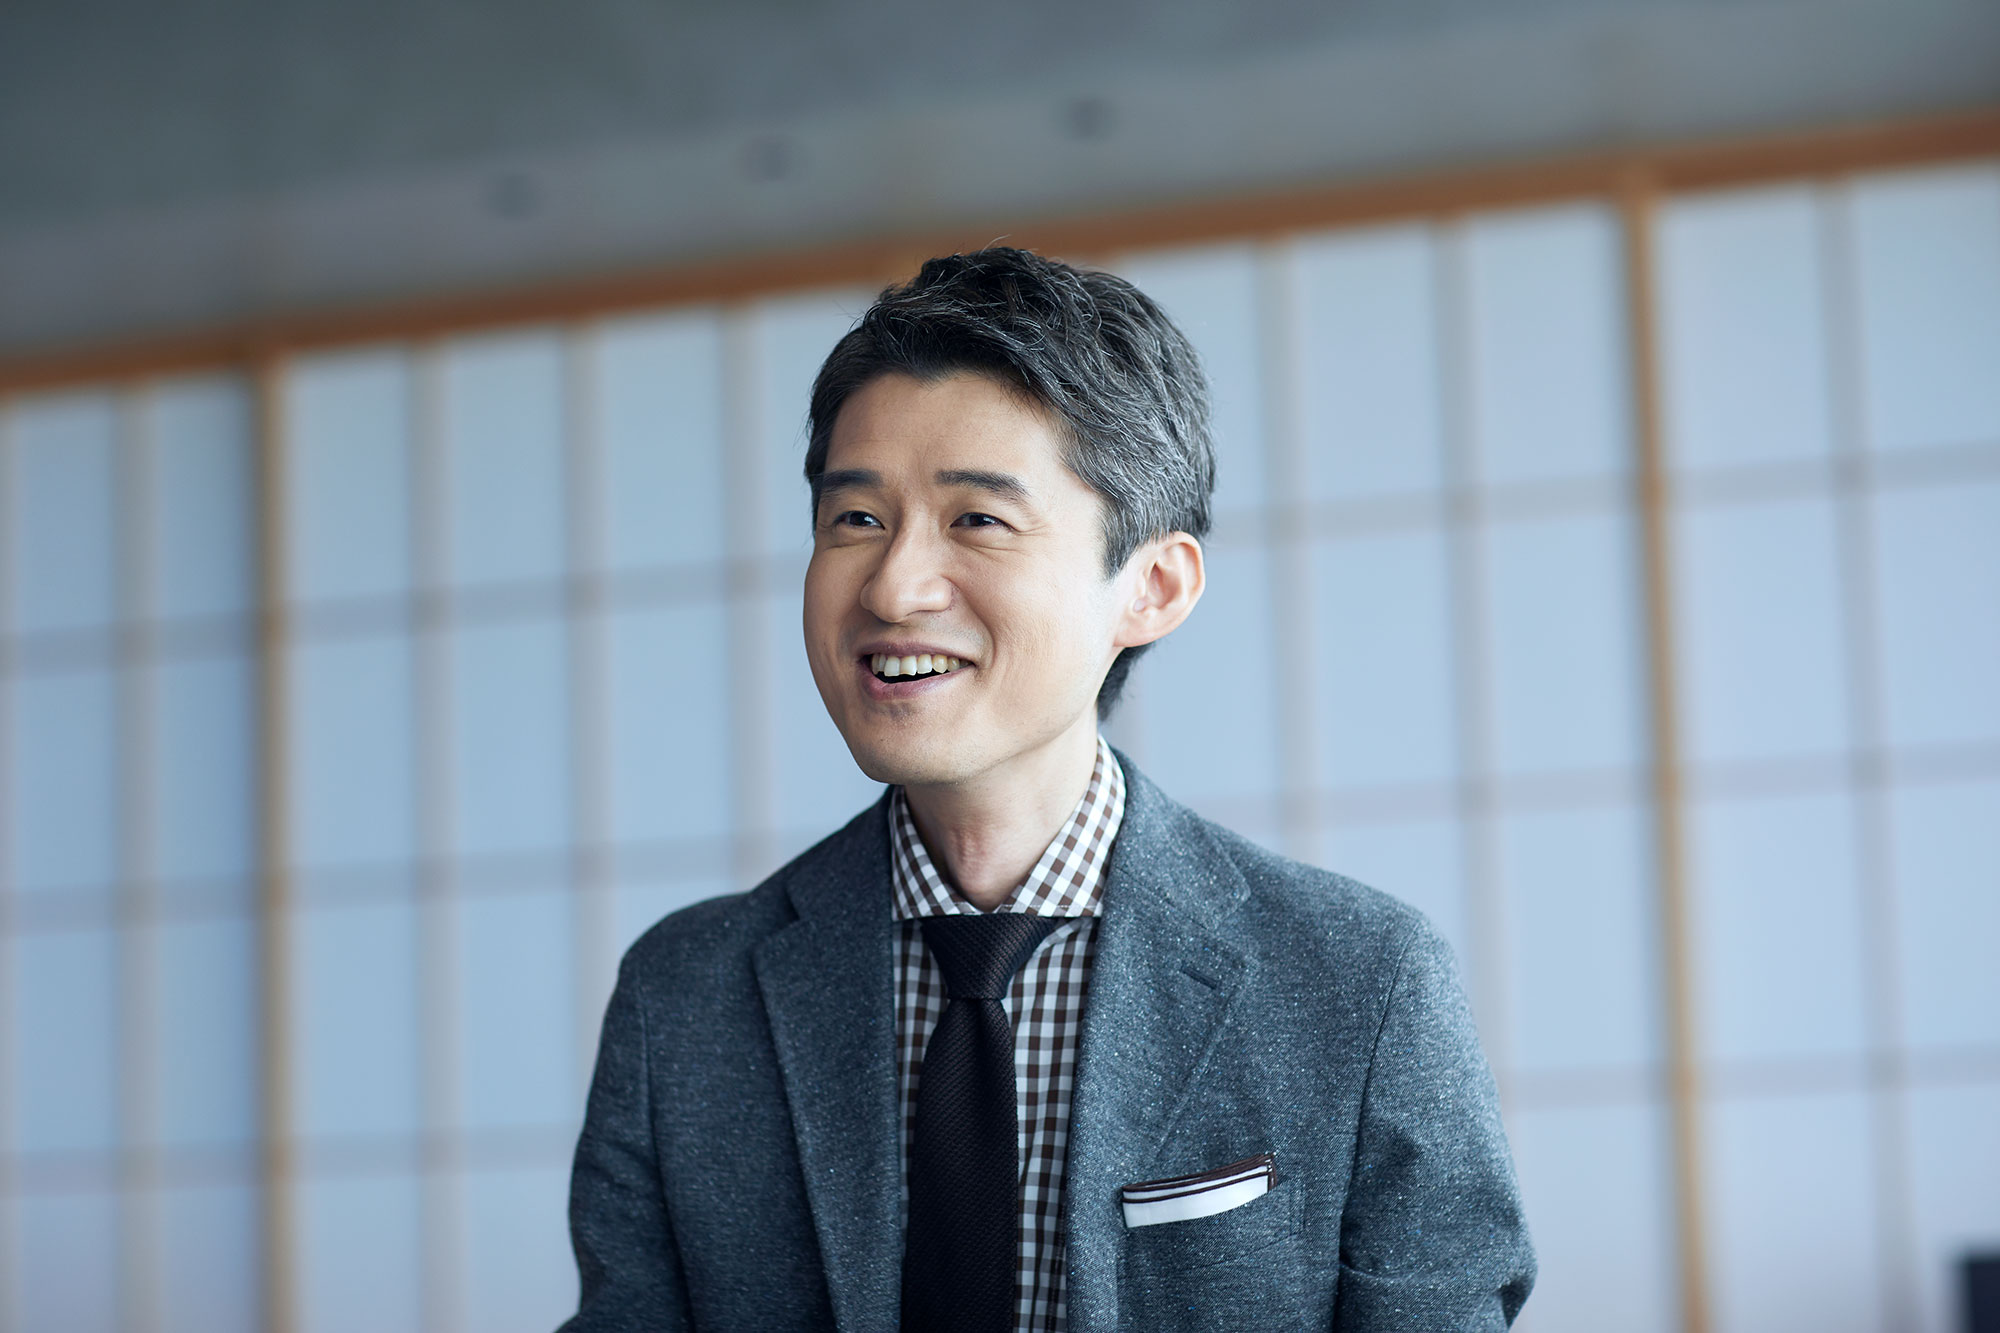 Hishashi Fujieda in a grey suit, gingham shirt, and black tie.